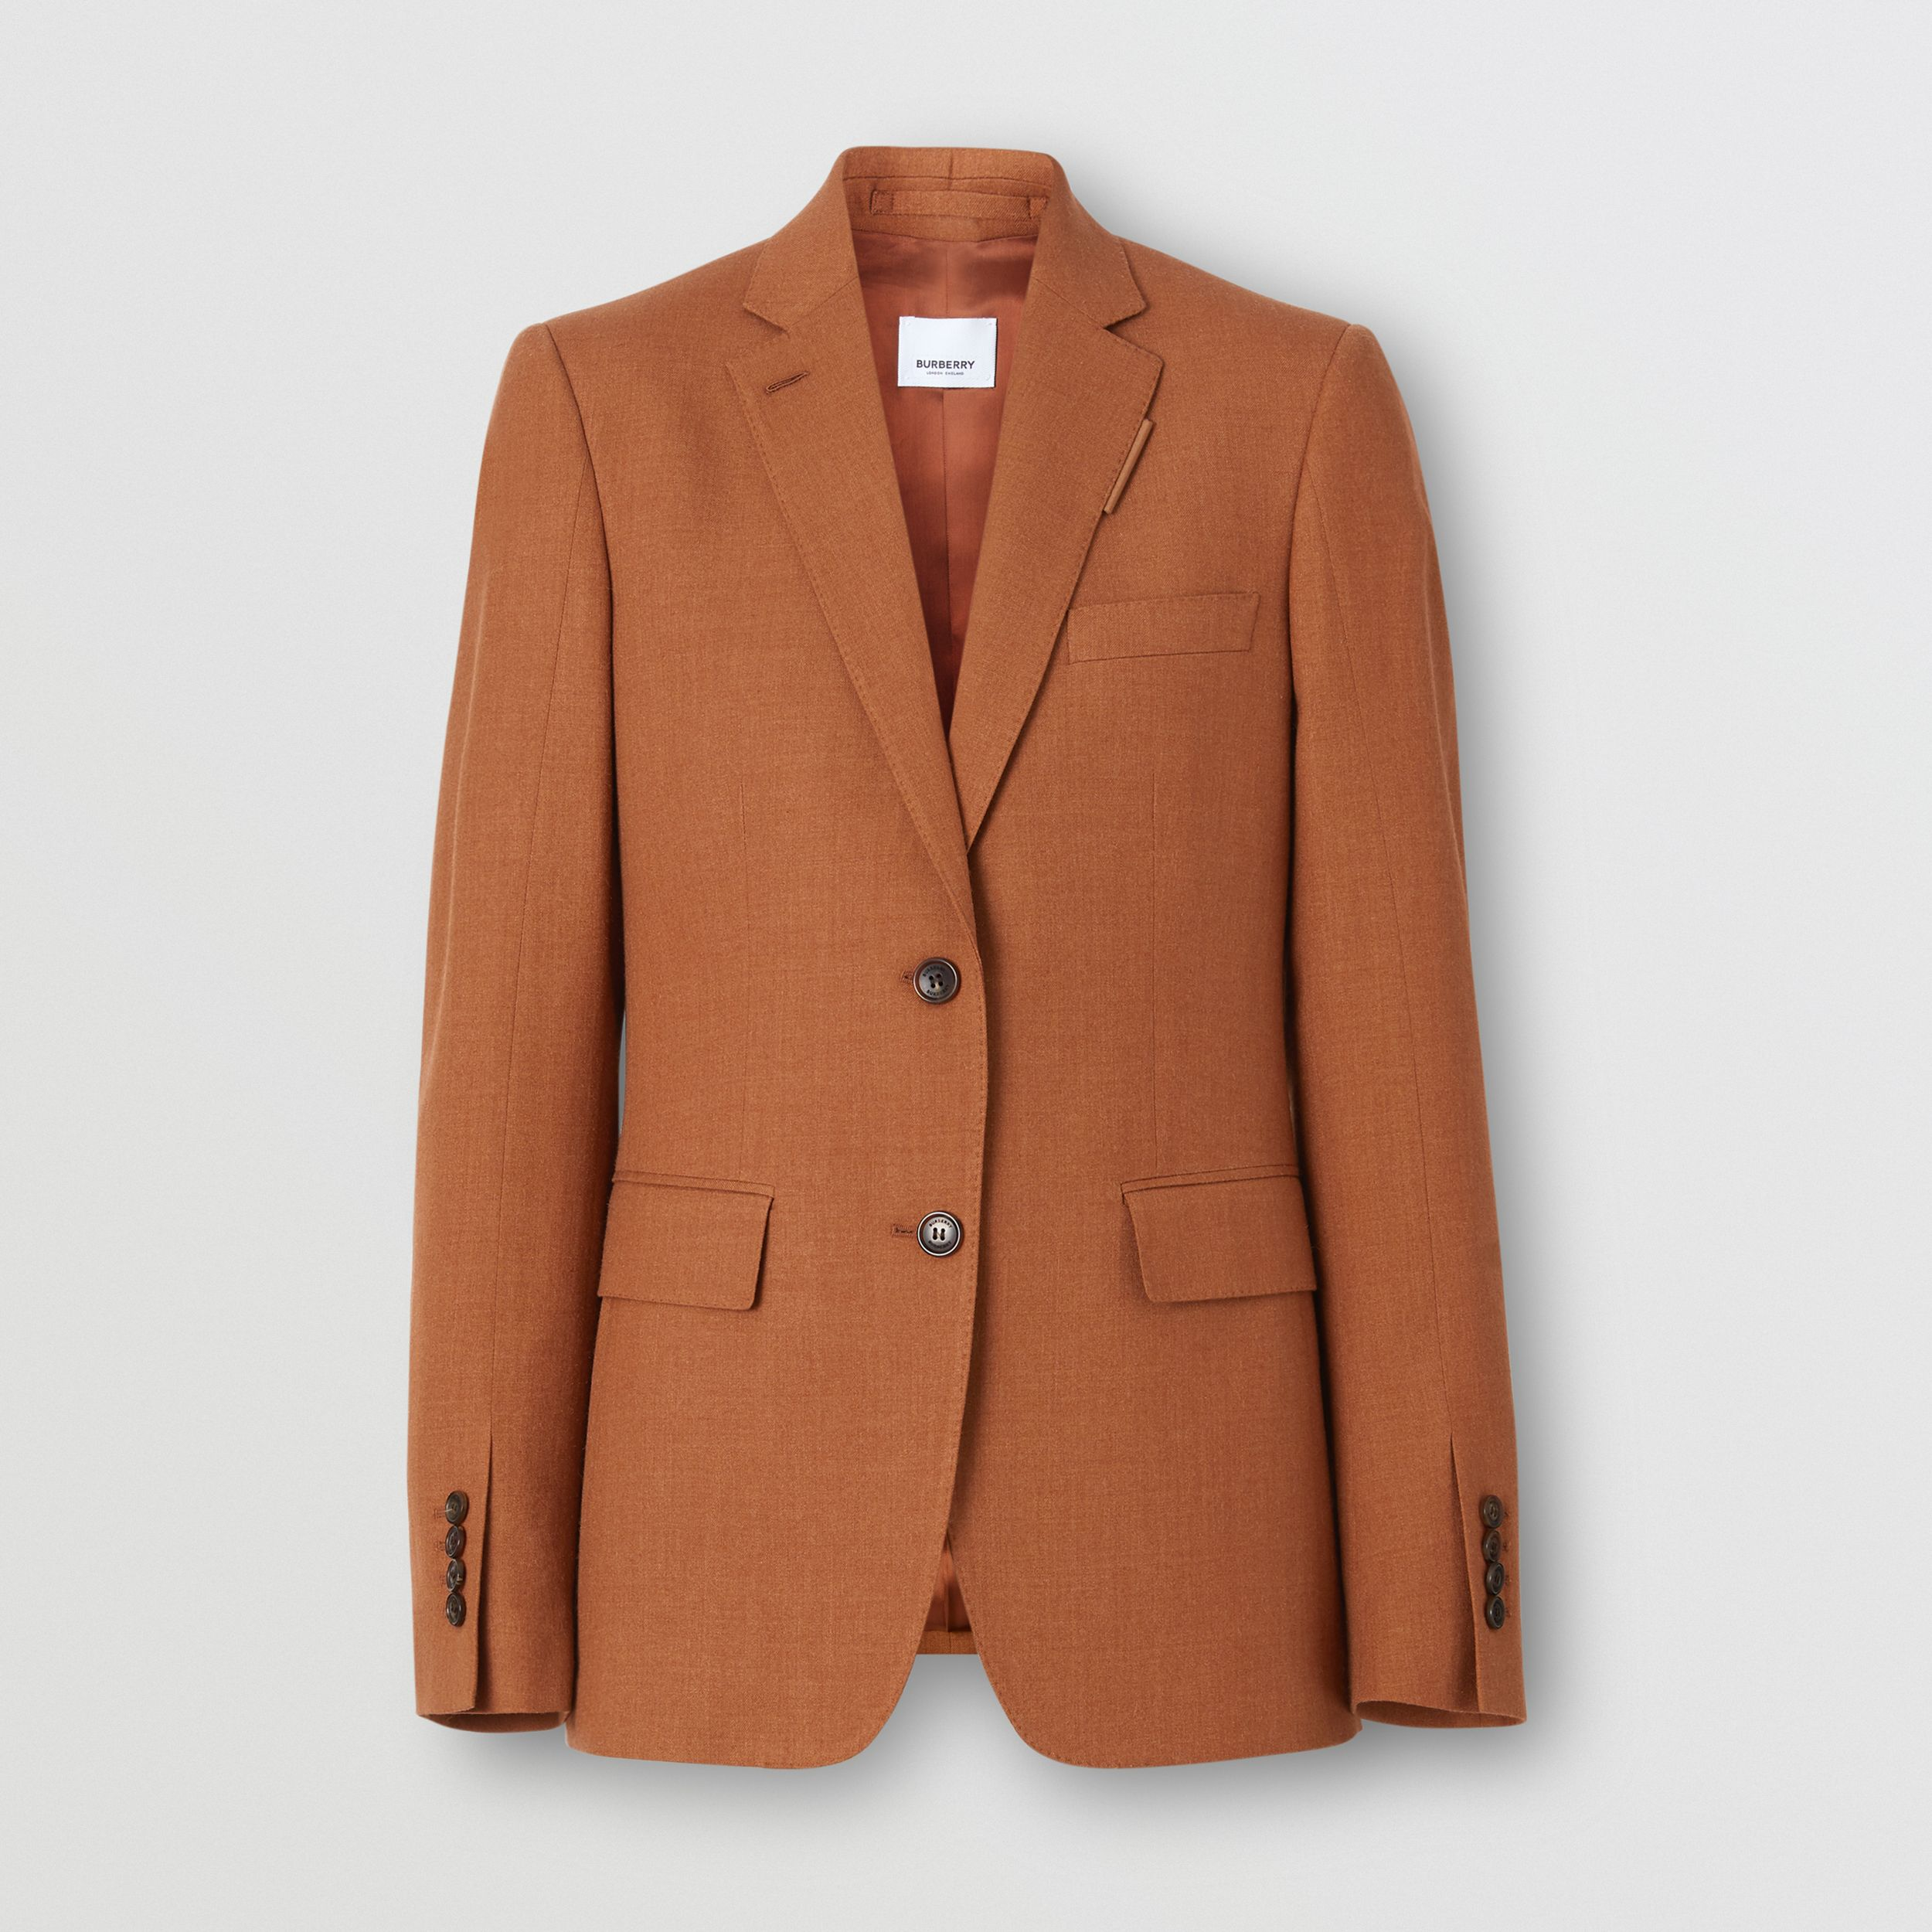 Wool, Silk and Cotton Blazer in Rust - Women | Burberry - 4